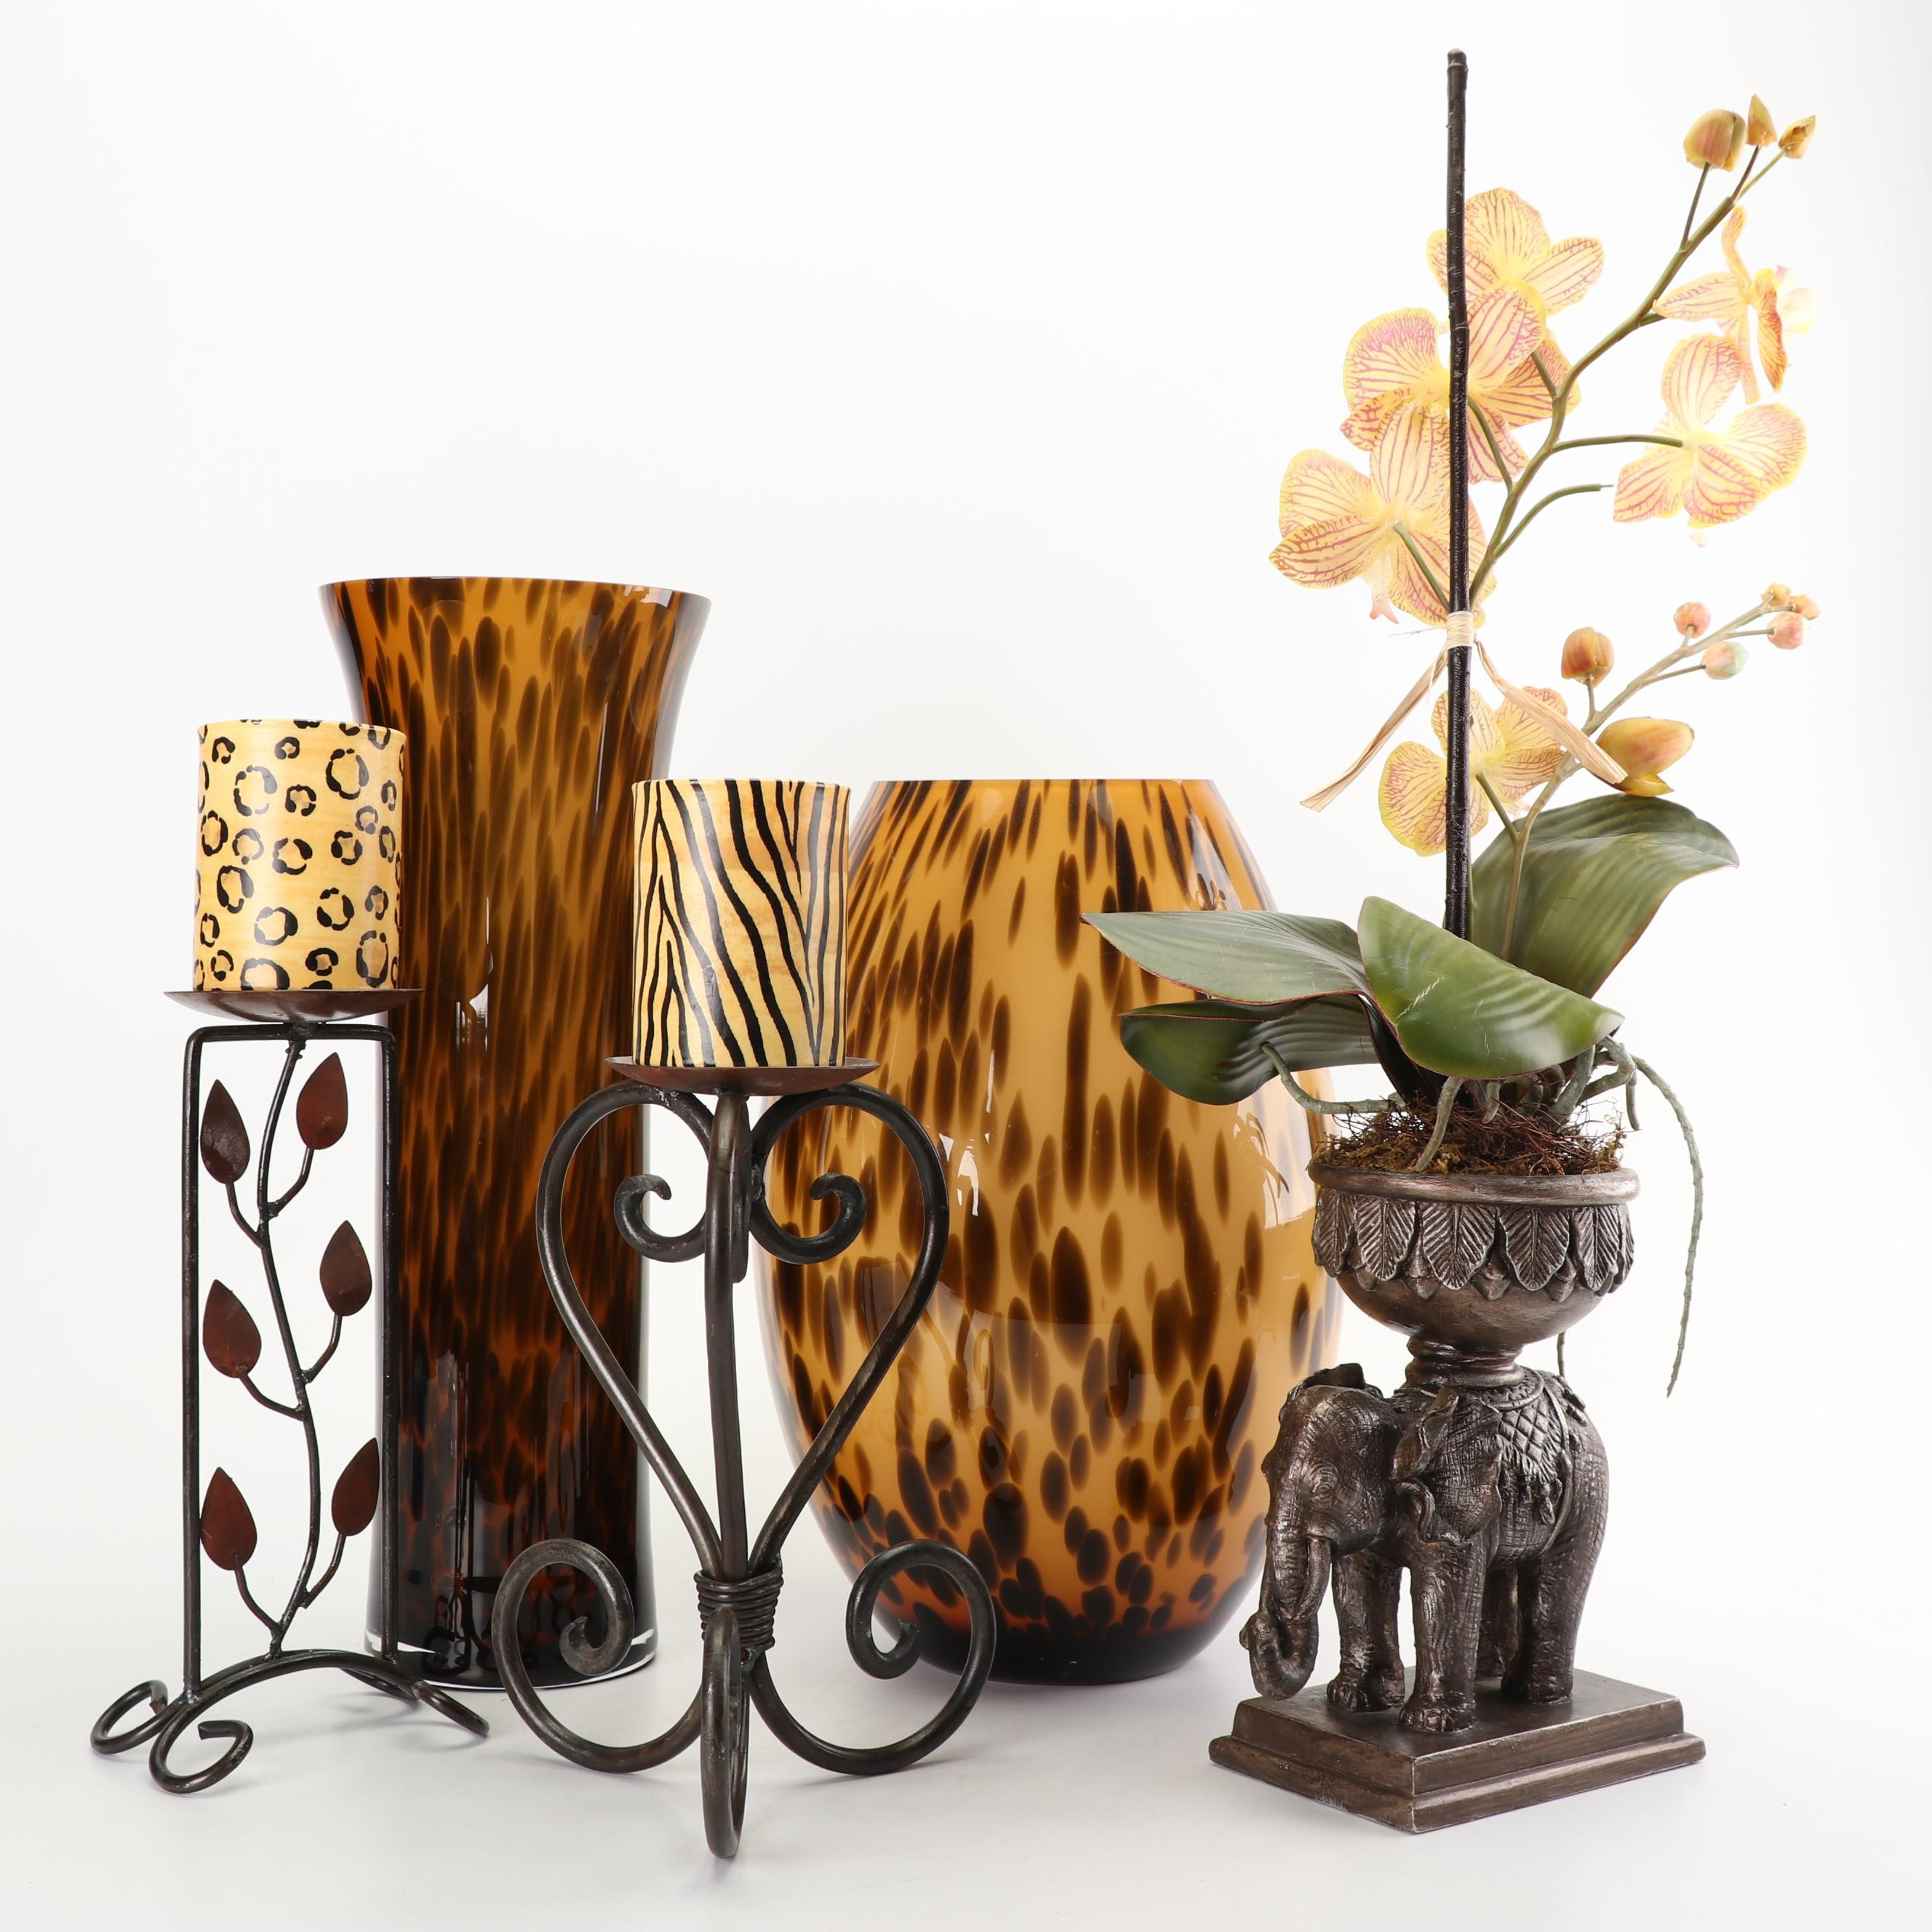 Animal Print Vases, Candle Holders, and Other Decor